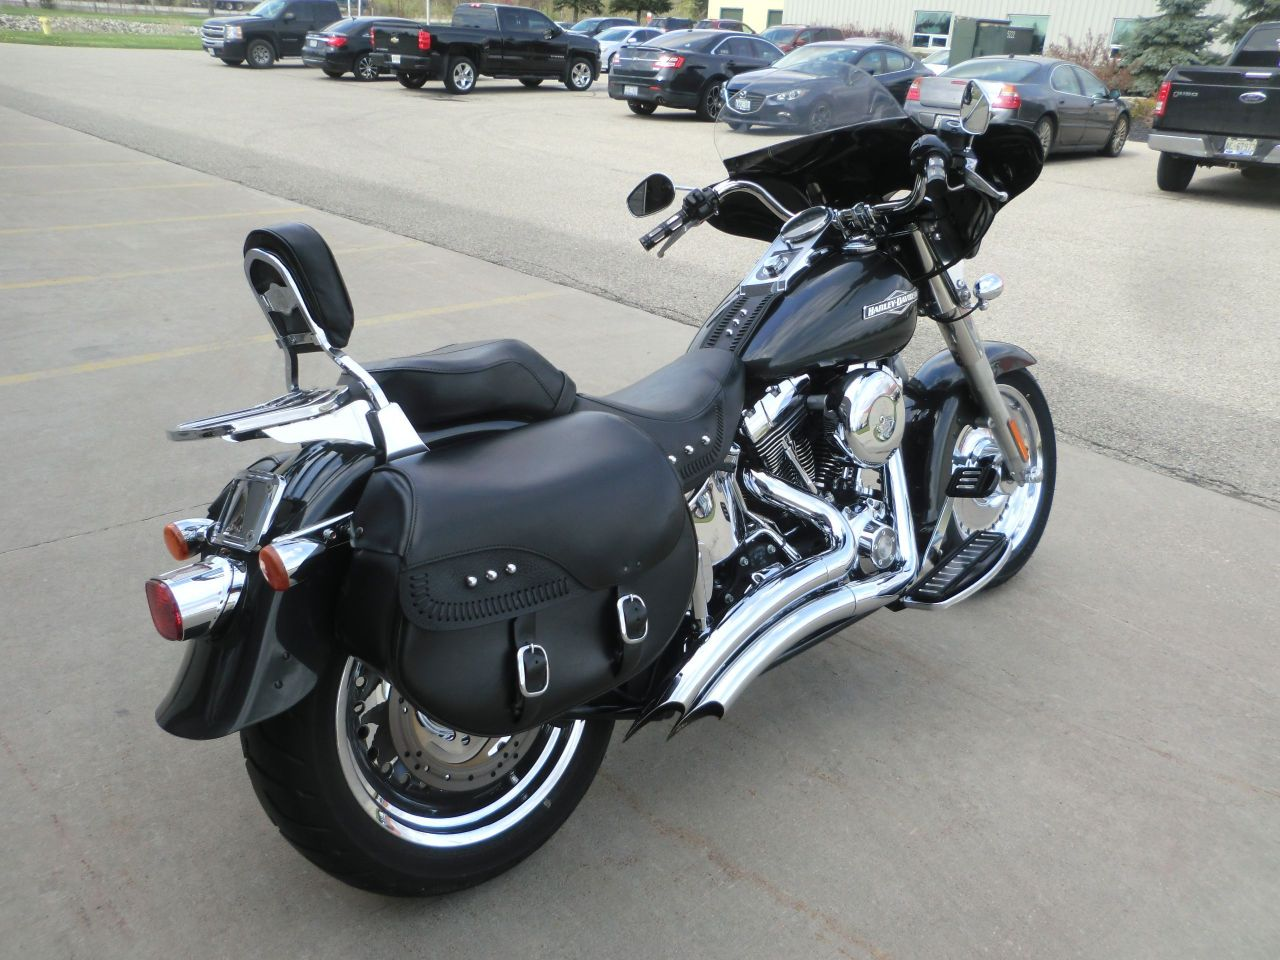 2009 Harley-Davidson FAT BOY